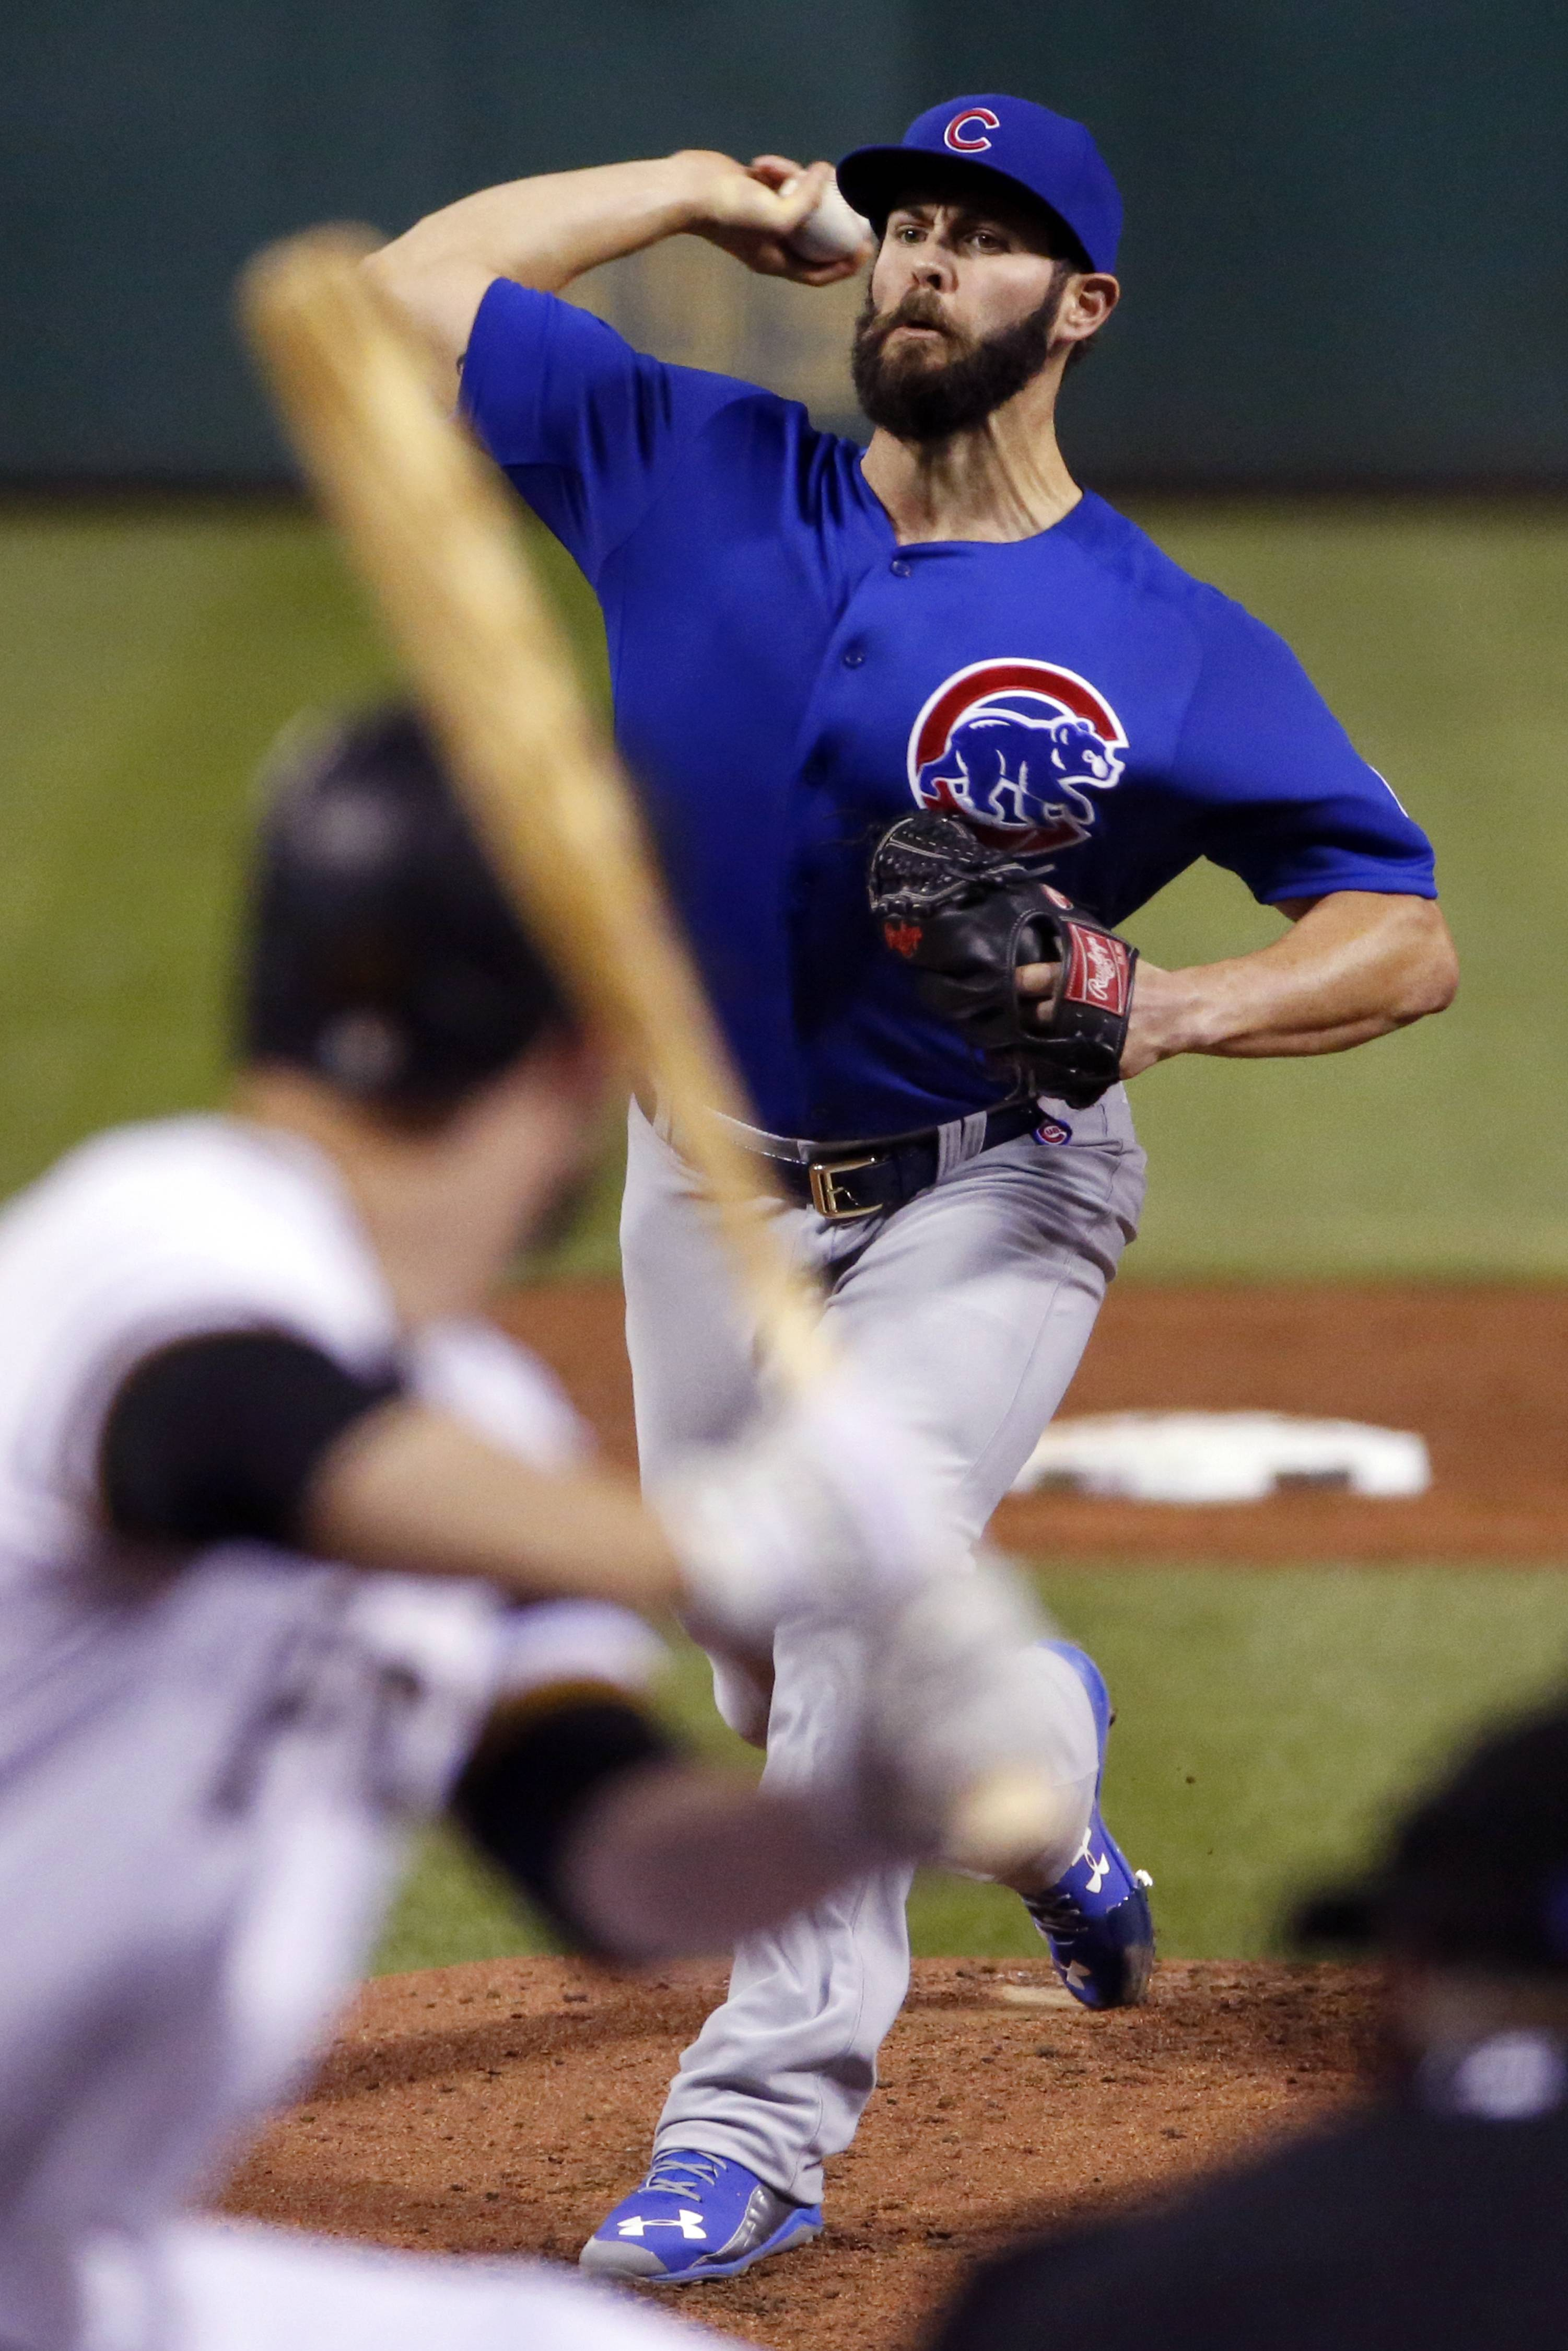 With a new $10.7 million contract reached Friday night, Jake Arrieta and the Cubs avoid an arbitration meeting.